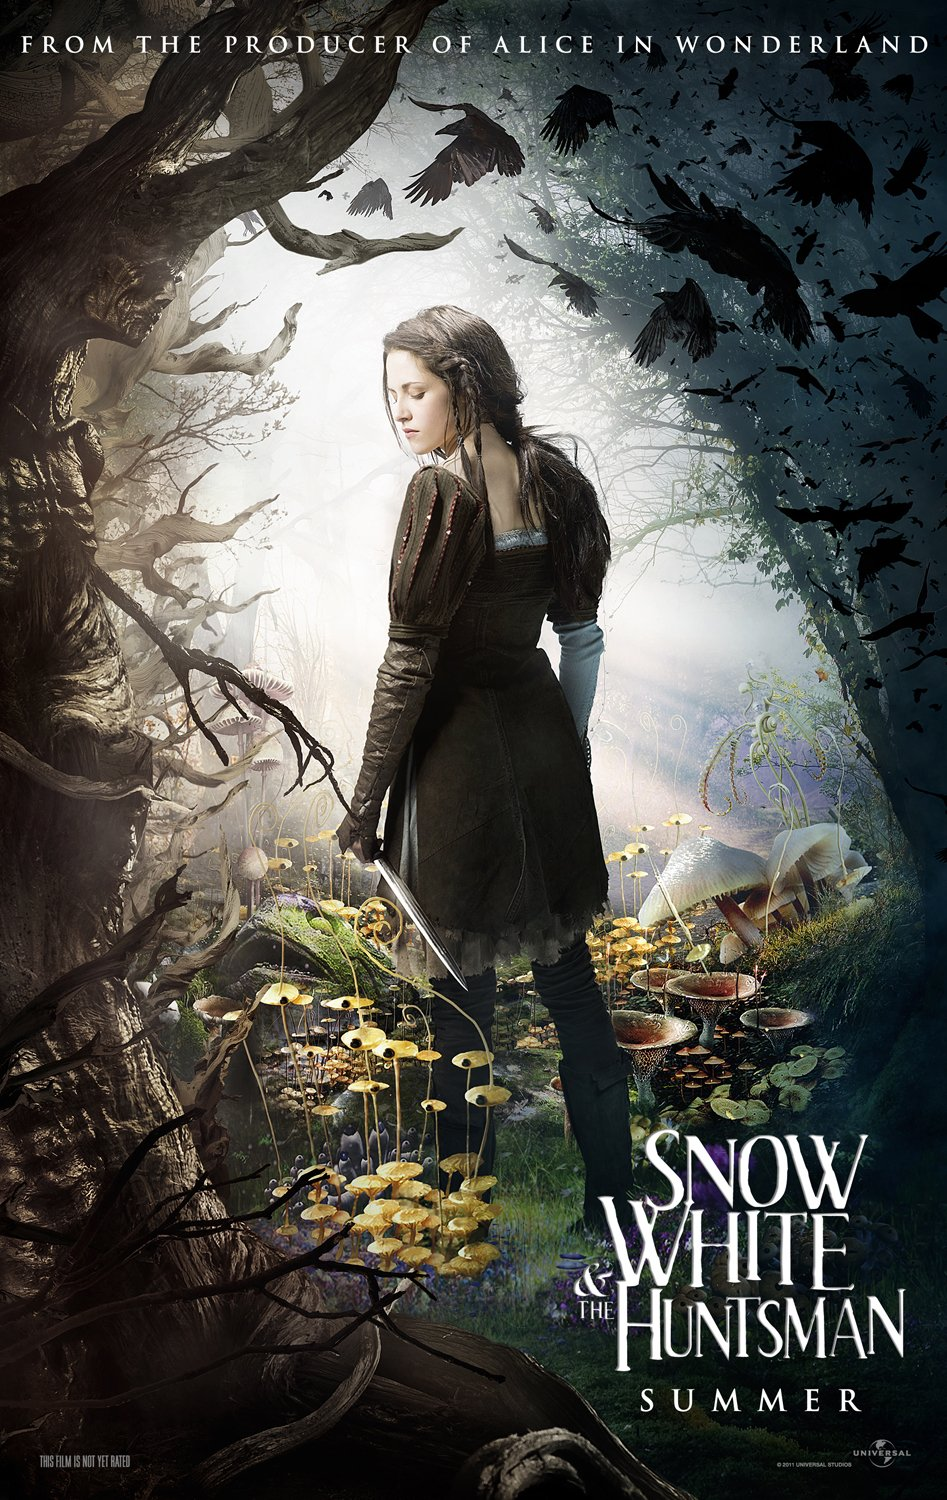 Snow White And The Huntsman 2 Poster Snow-white-and-the-huntsman-2